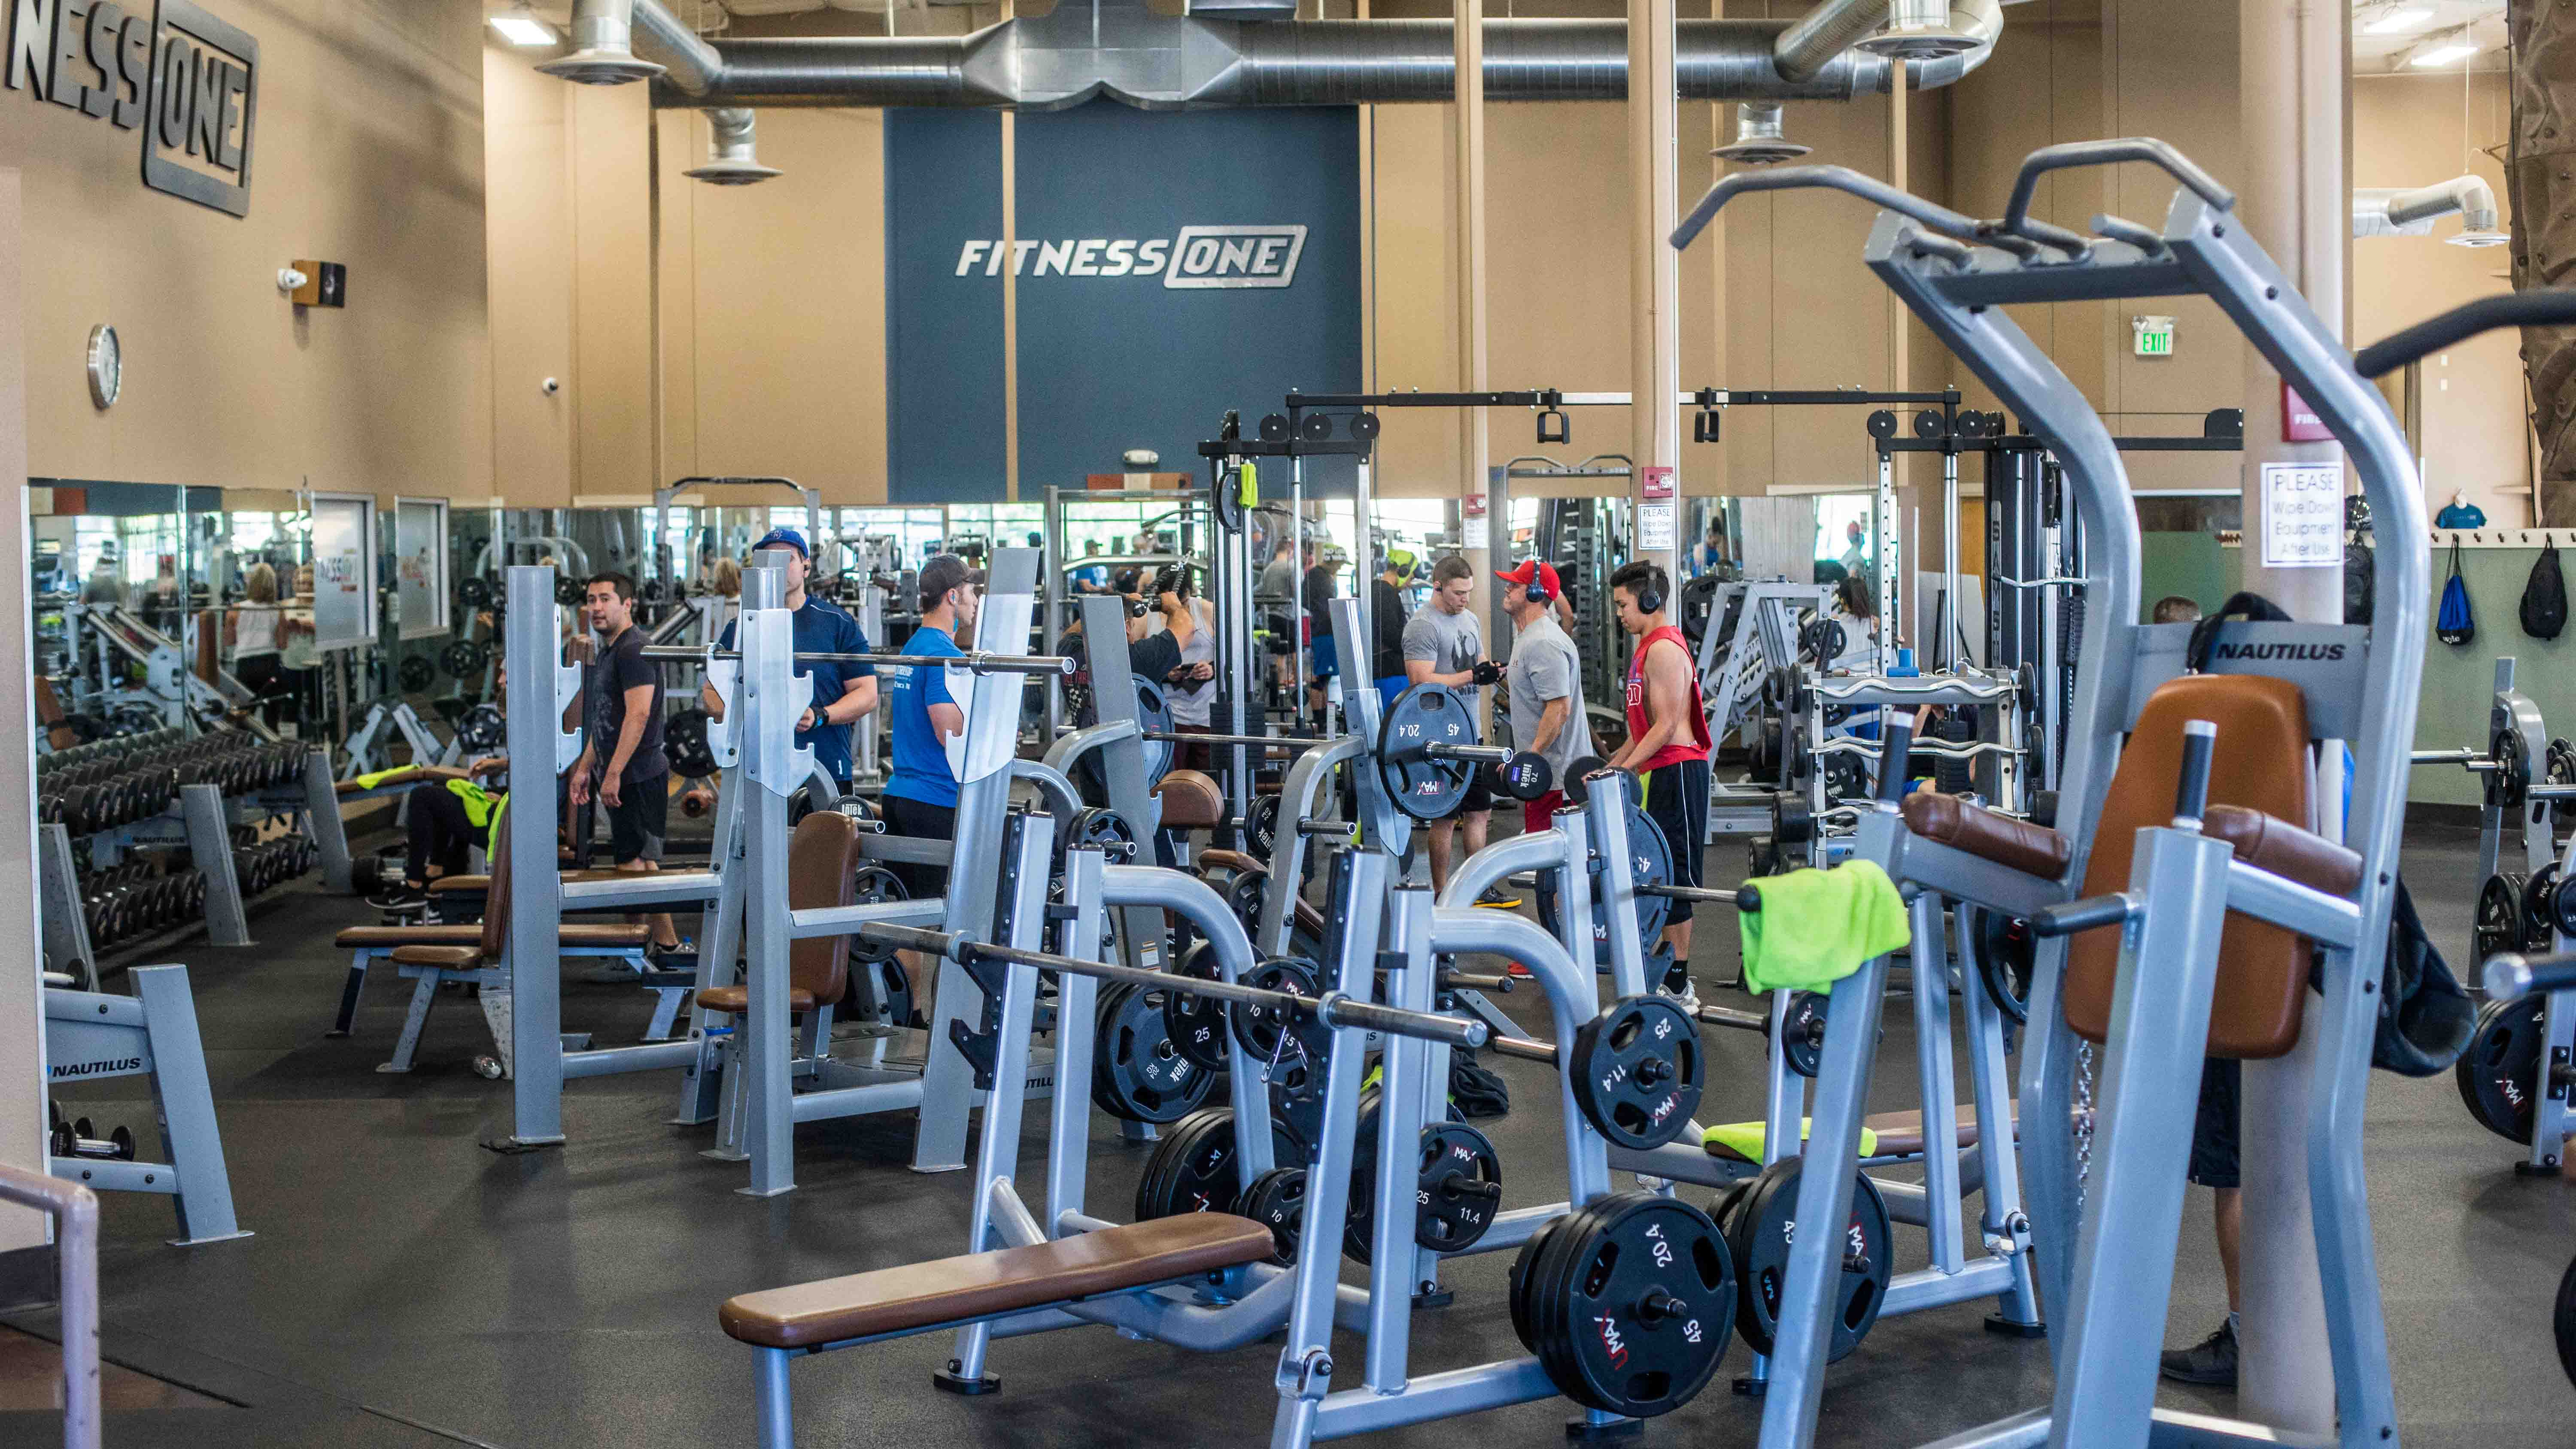 Las Cruces Nm Fitness One